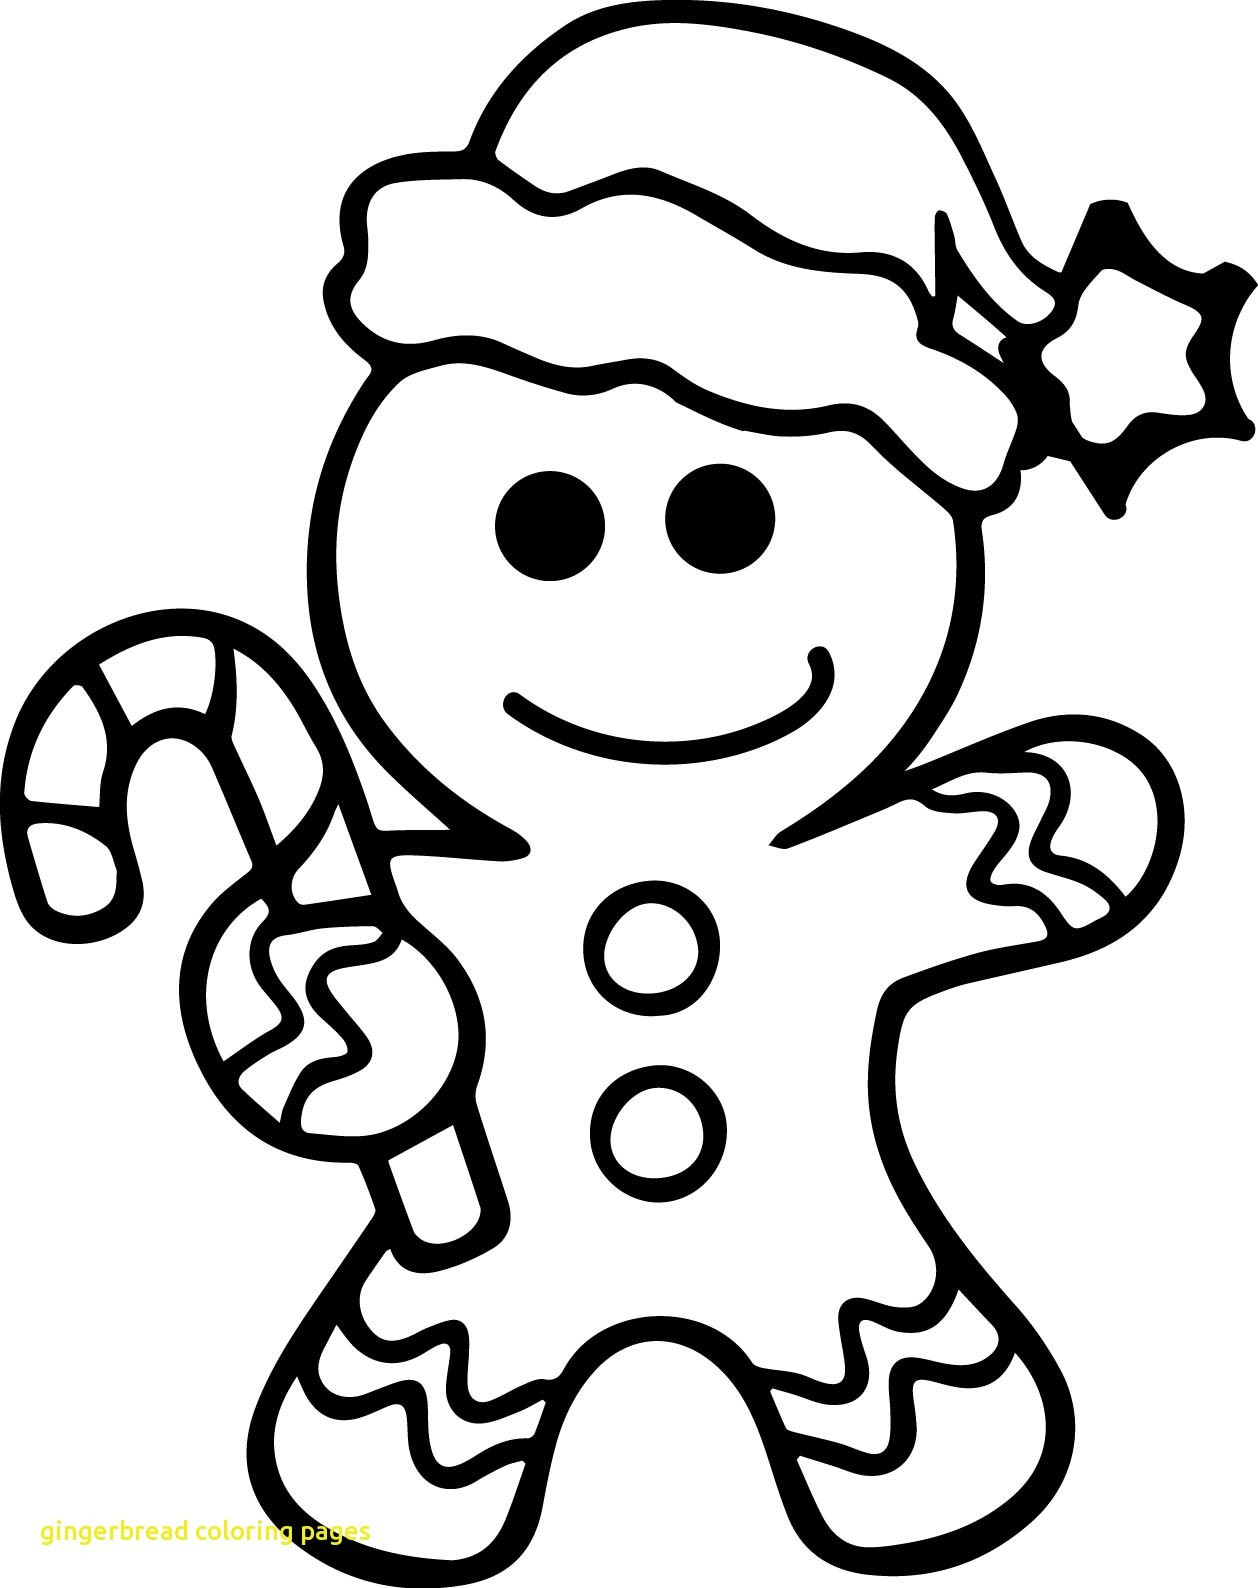 how to draw gingerbread man gingerbread man line drawing at paintingvalleycom draw to gingerbread how man